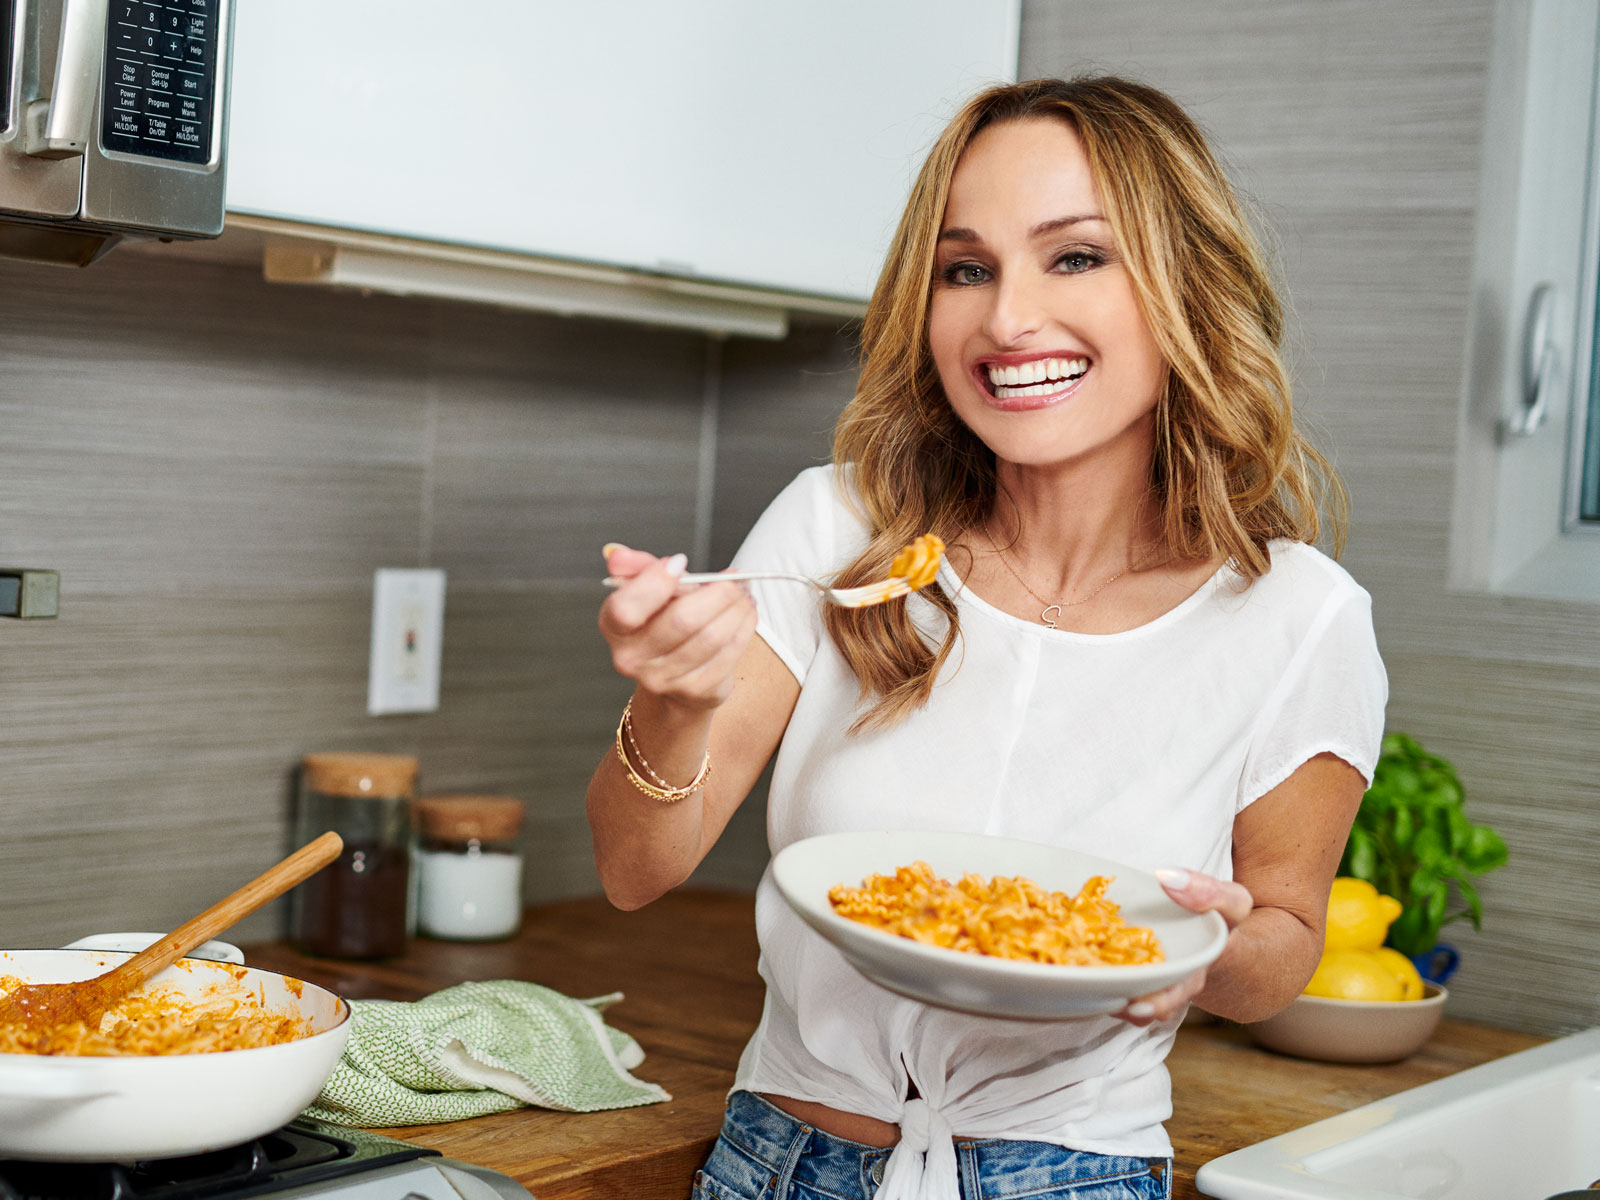 The Cheap Wine Giada Swears By